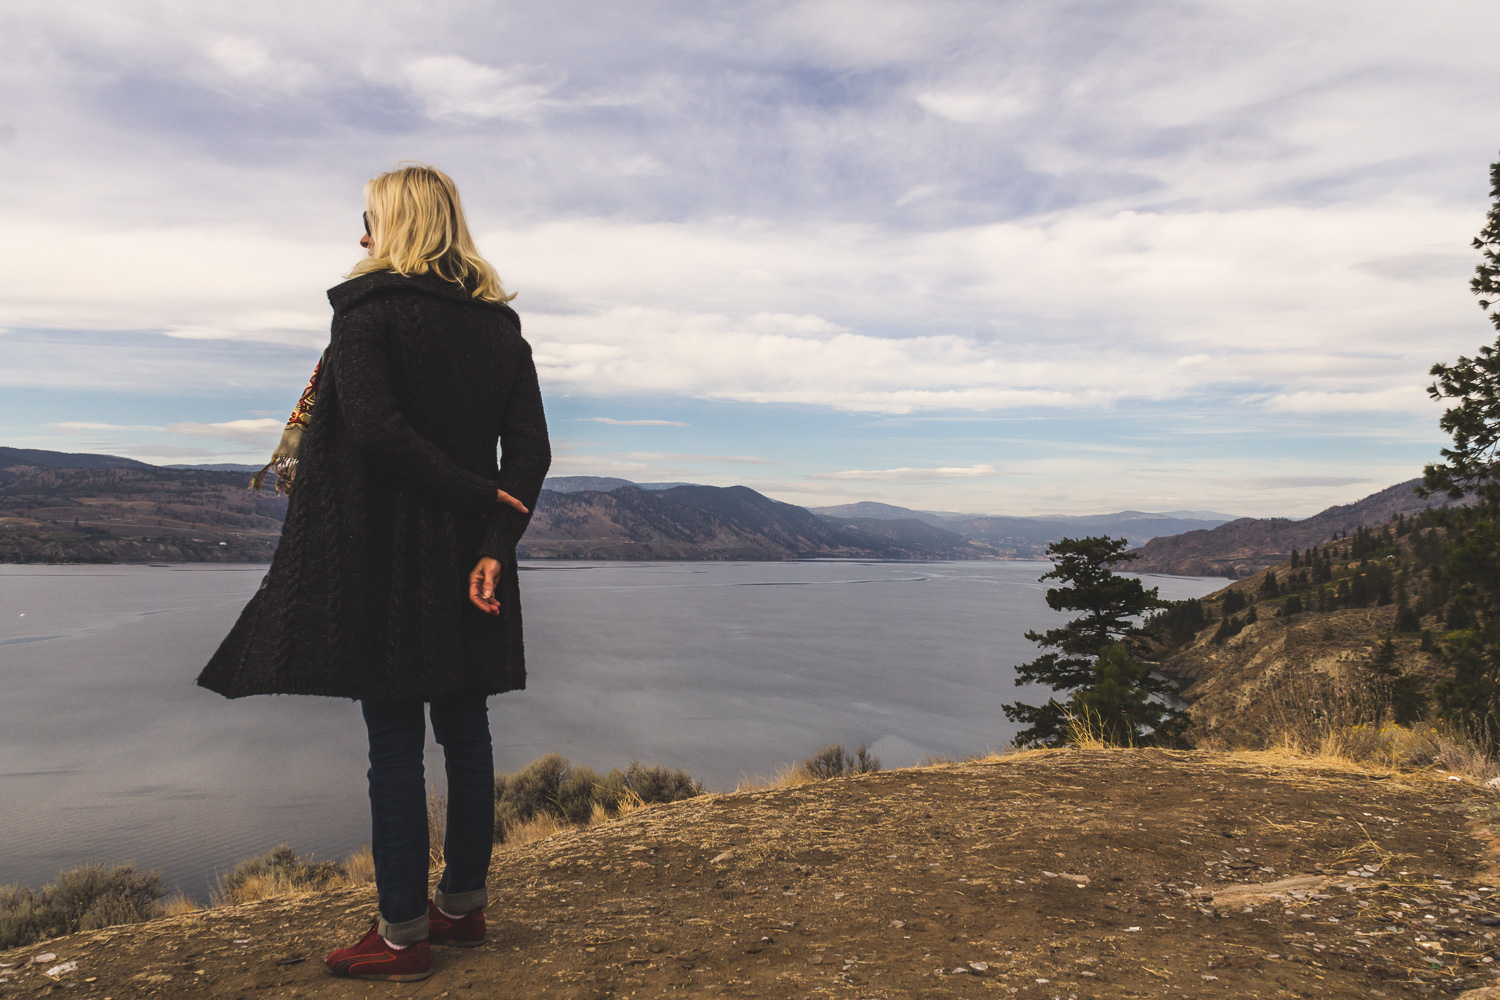 Overlooking Lake Okanagan, near Naramata, BC. Photo by Helena McMurdo/Endless Picnic